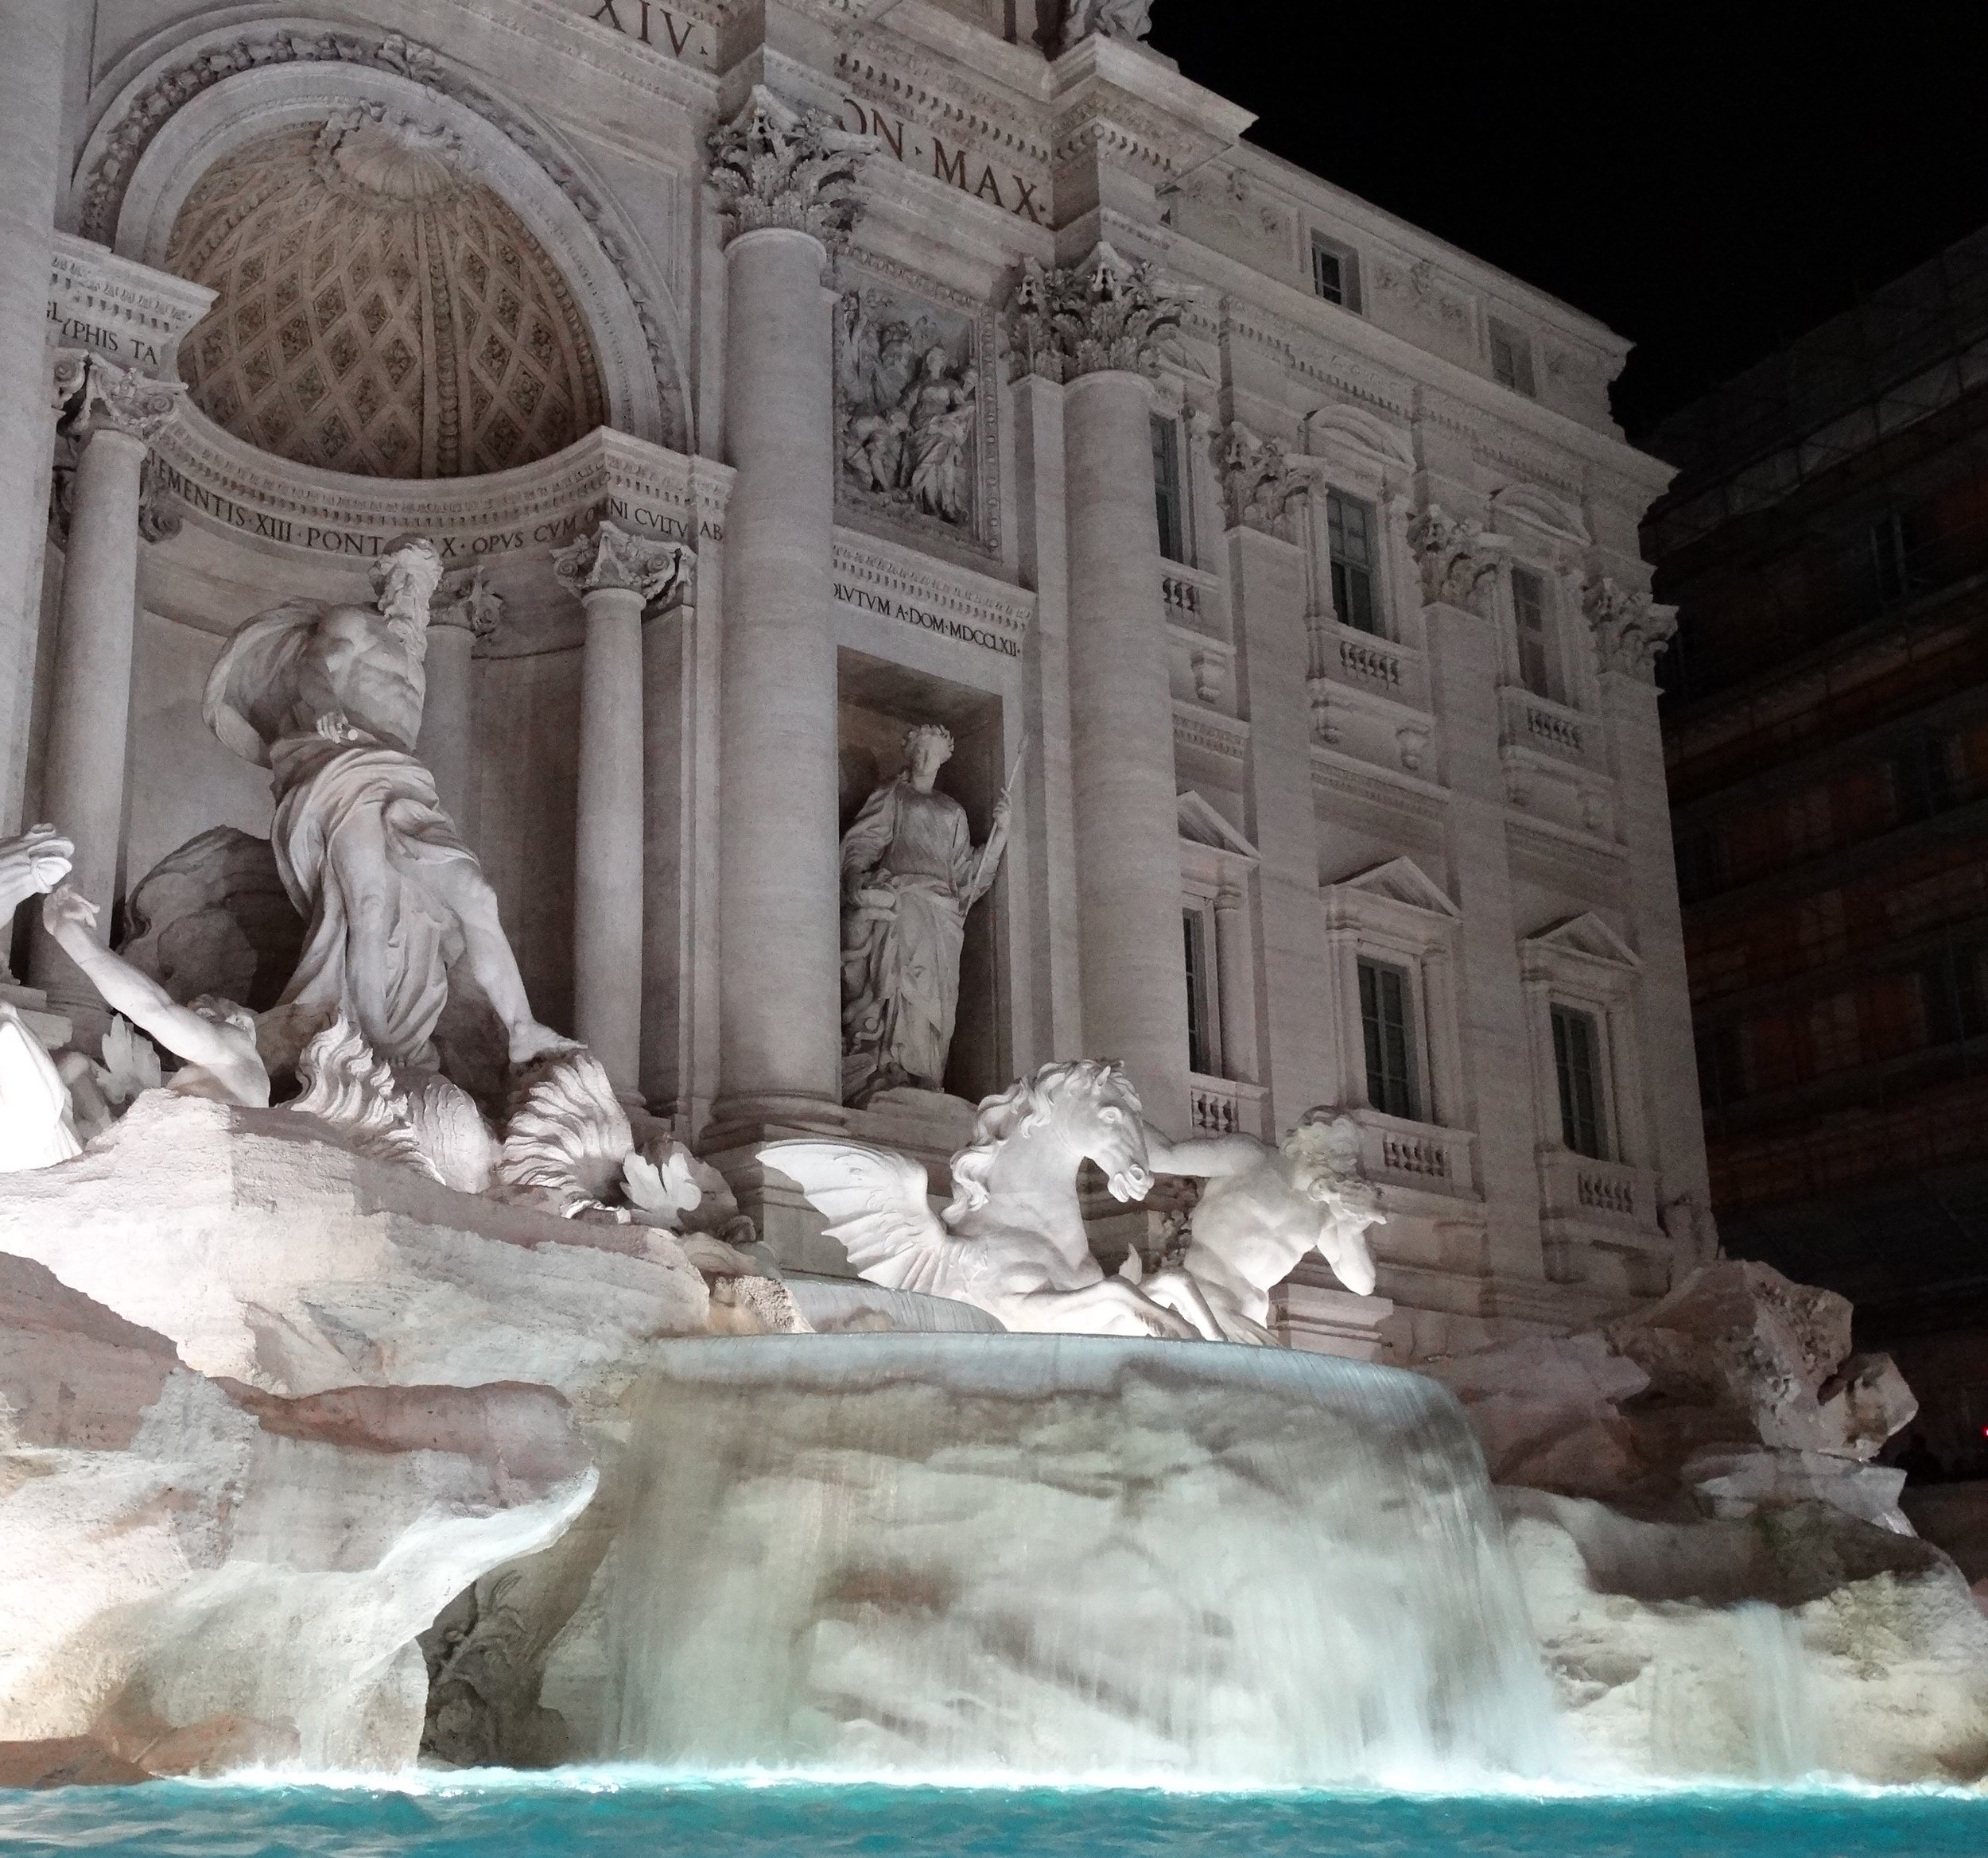 The incomparable Trevi Fountain